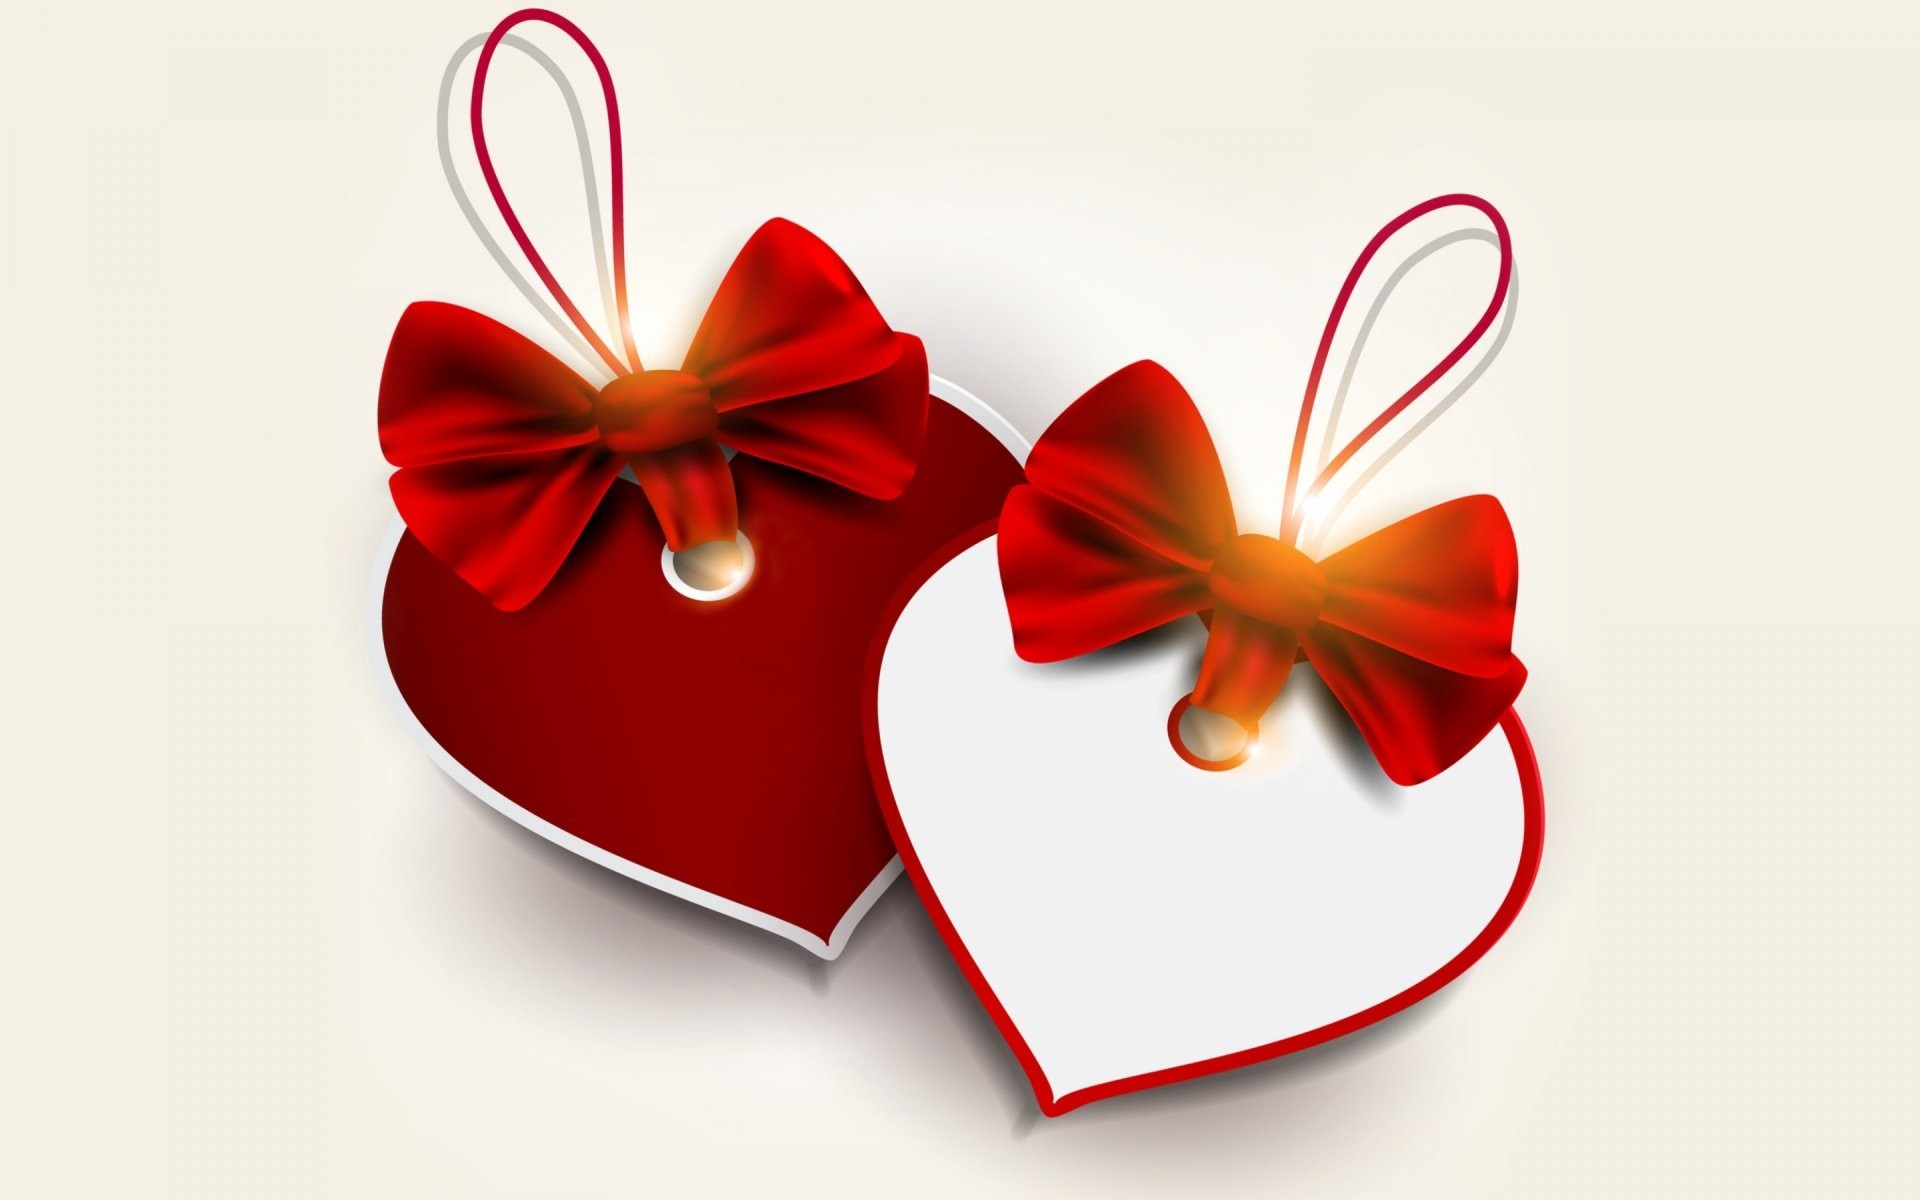 VALENTINES DAY mood love holiday valentine heart wallpaper | |  617625 | WallpaperUP